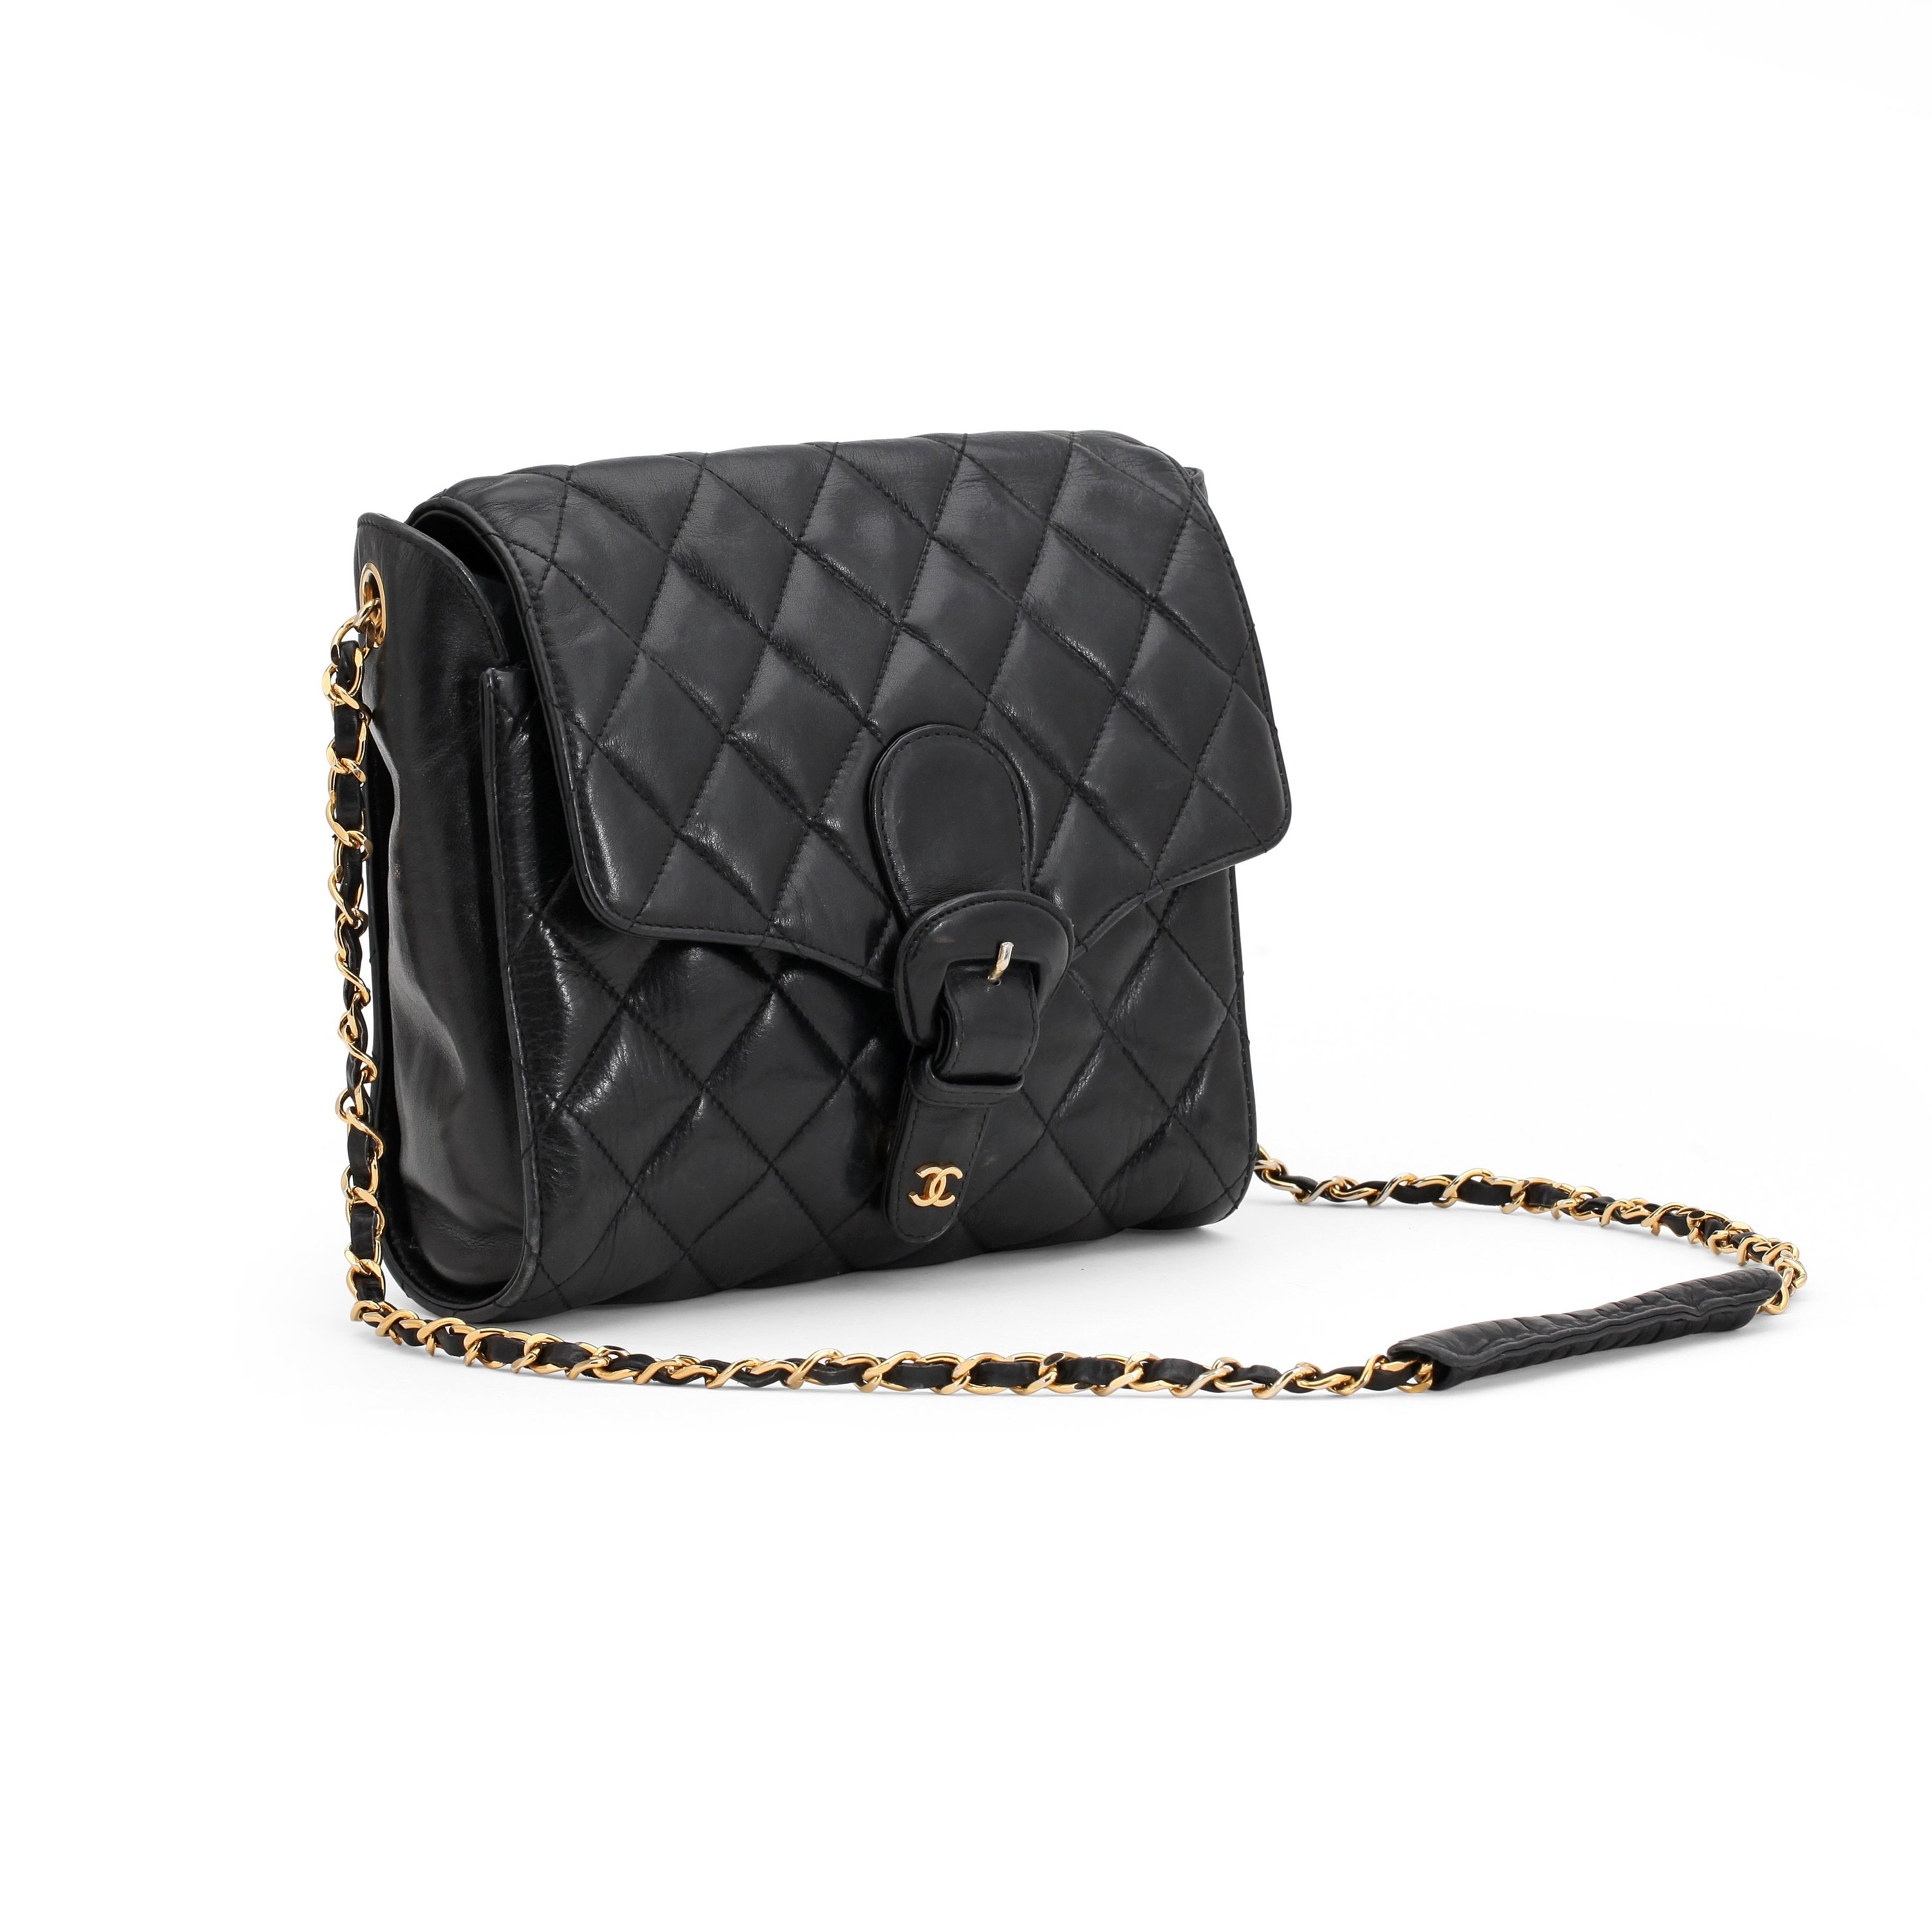 c0b781f893d5a6 CHANEL, a black quilted leather shoulder bag. - Bukowskis